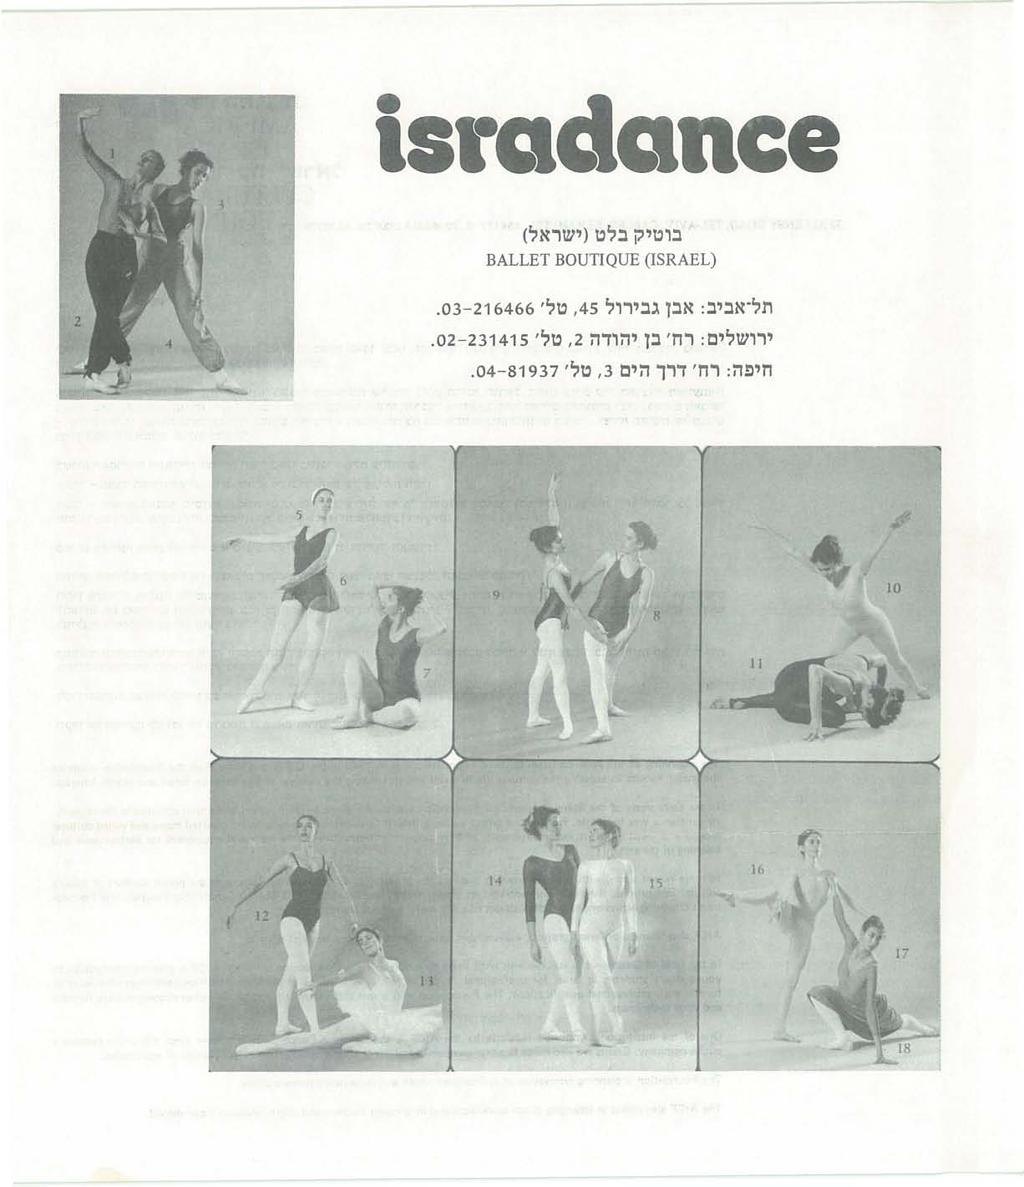 isradance בוטיק בלט (ישראל) BALLET BOUTIQUE (ISRAEL), 45 טל'. 03-216466, 2 טל'.